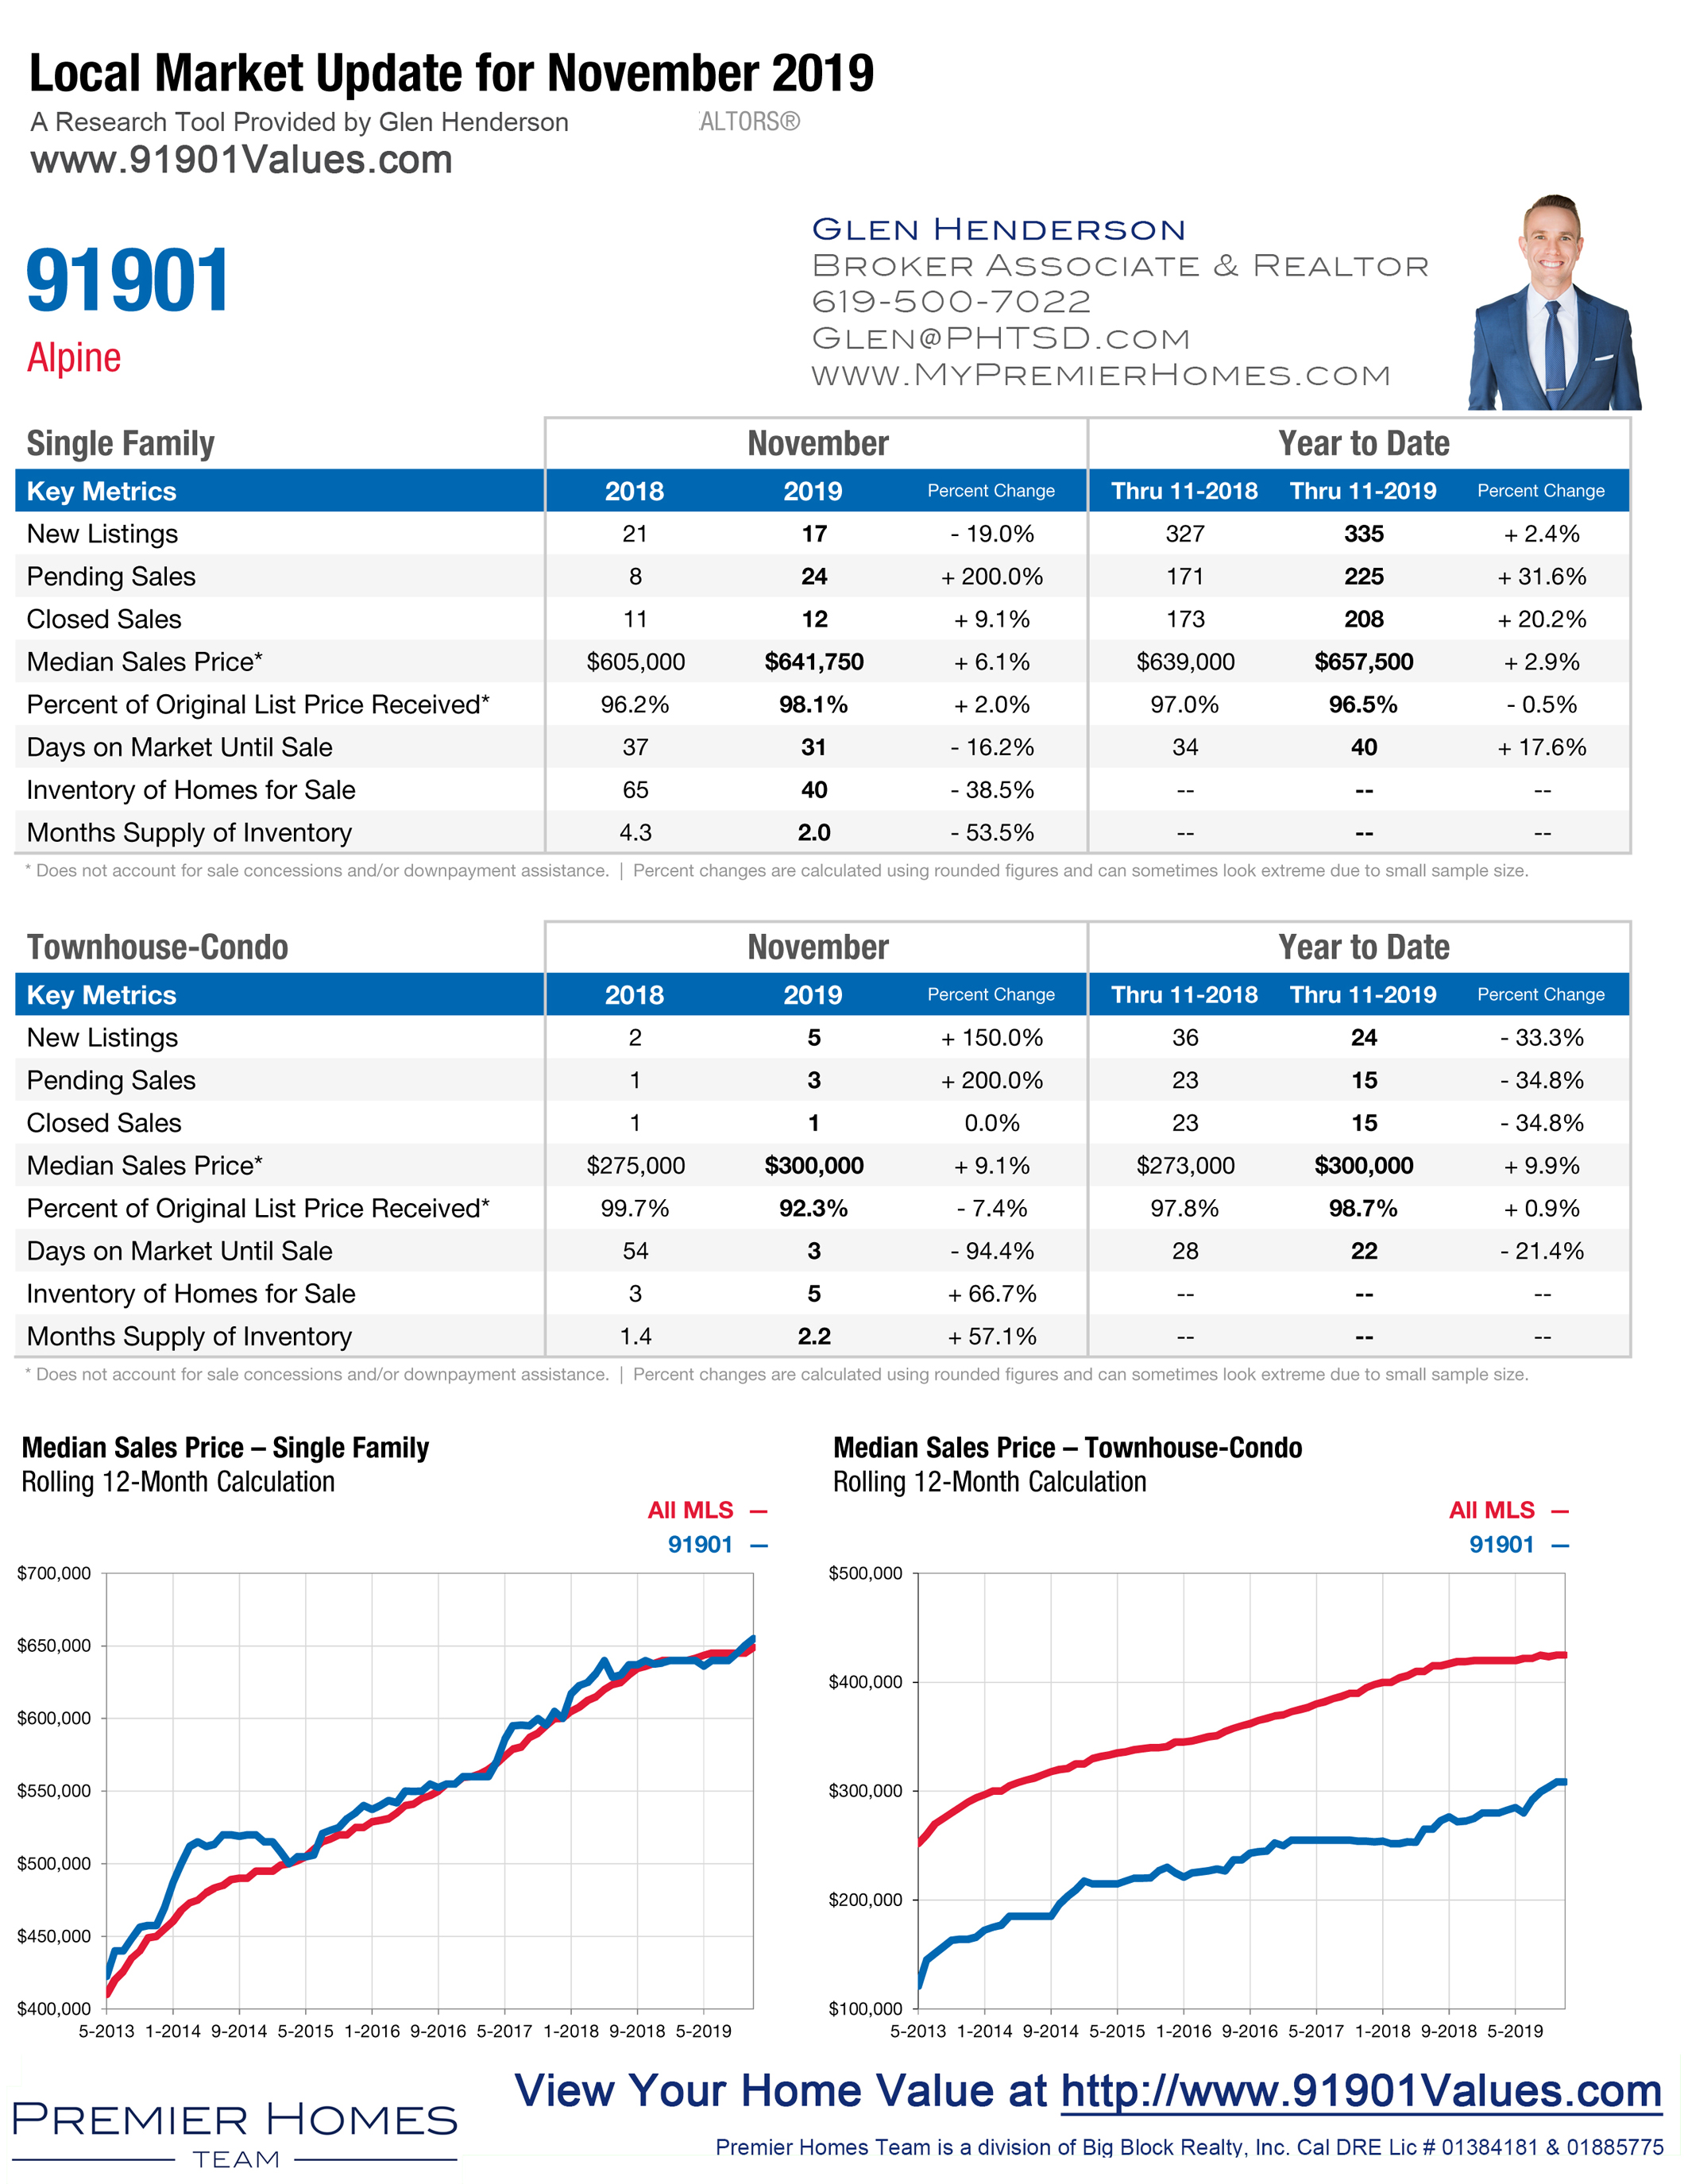 Alpine-Housing-Market-Update-91901-November-2019